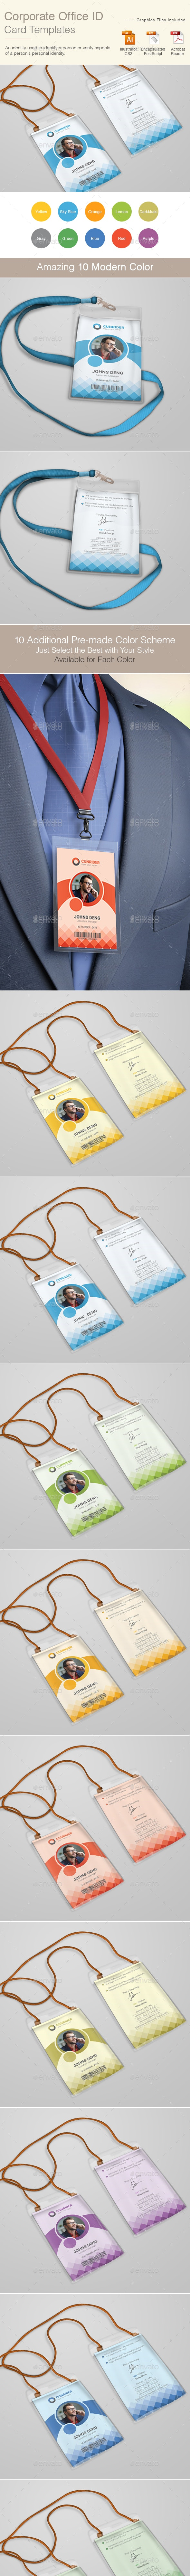 Corporate ID Card - Miscellaneous Print Templates